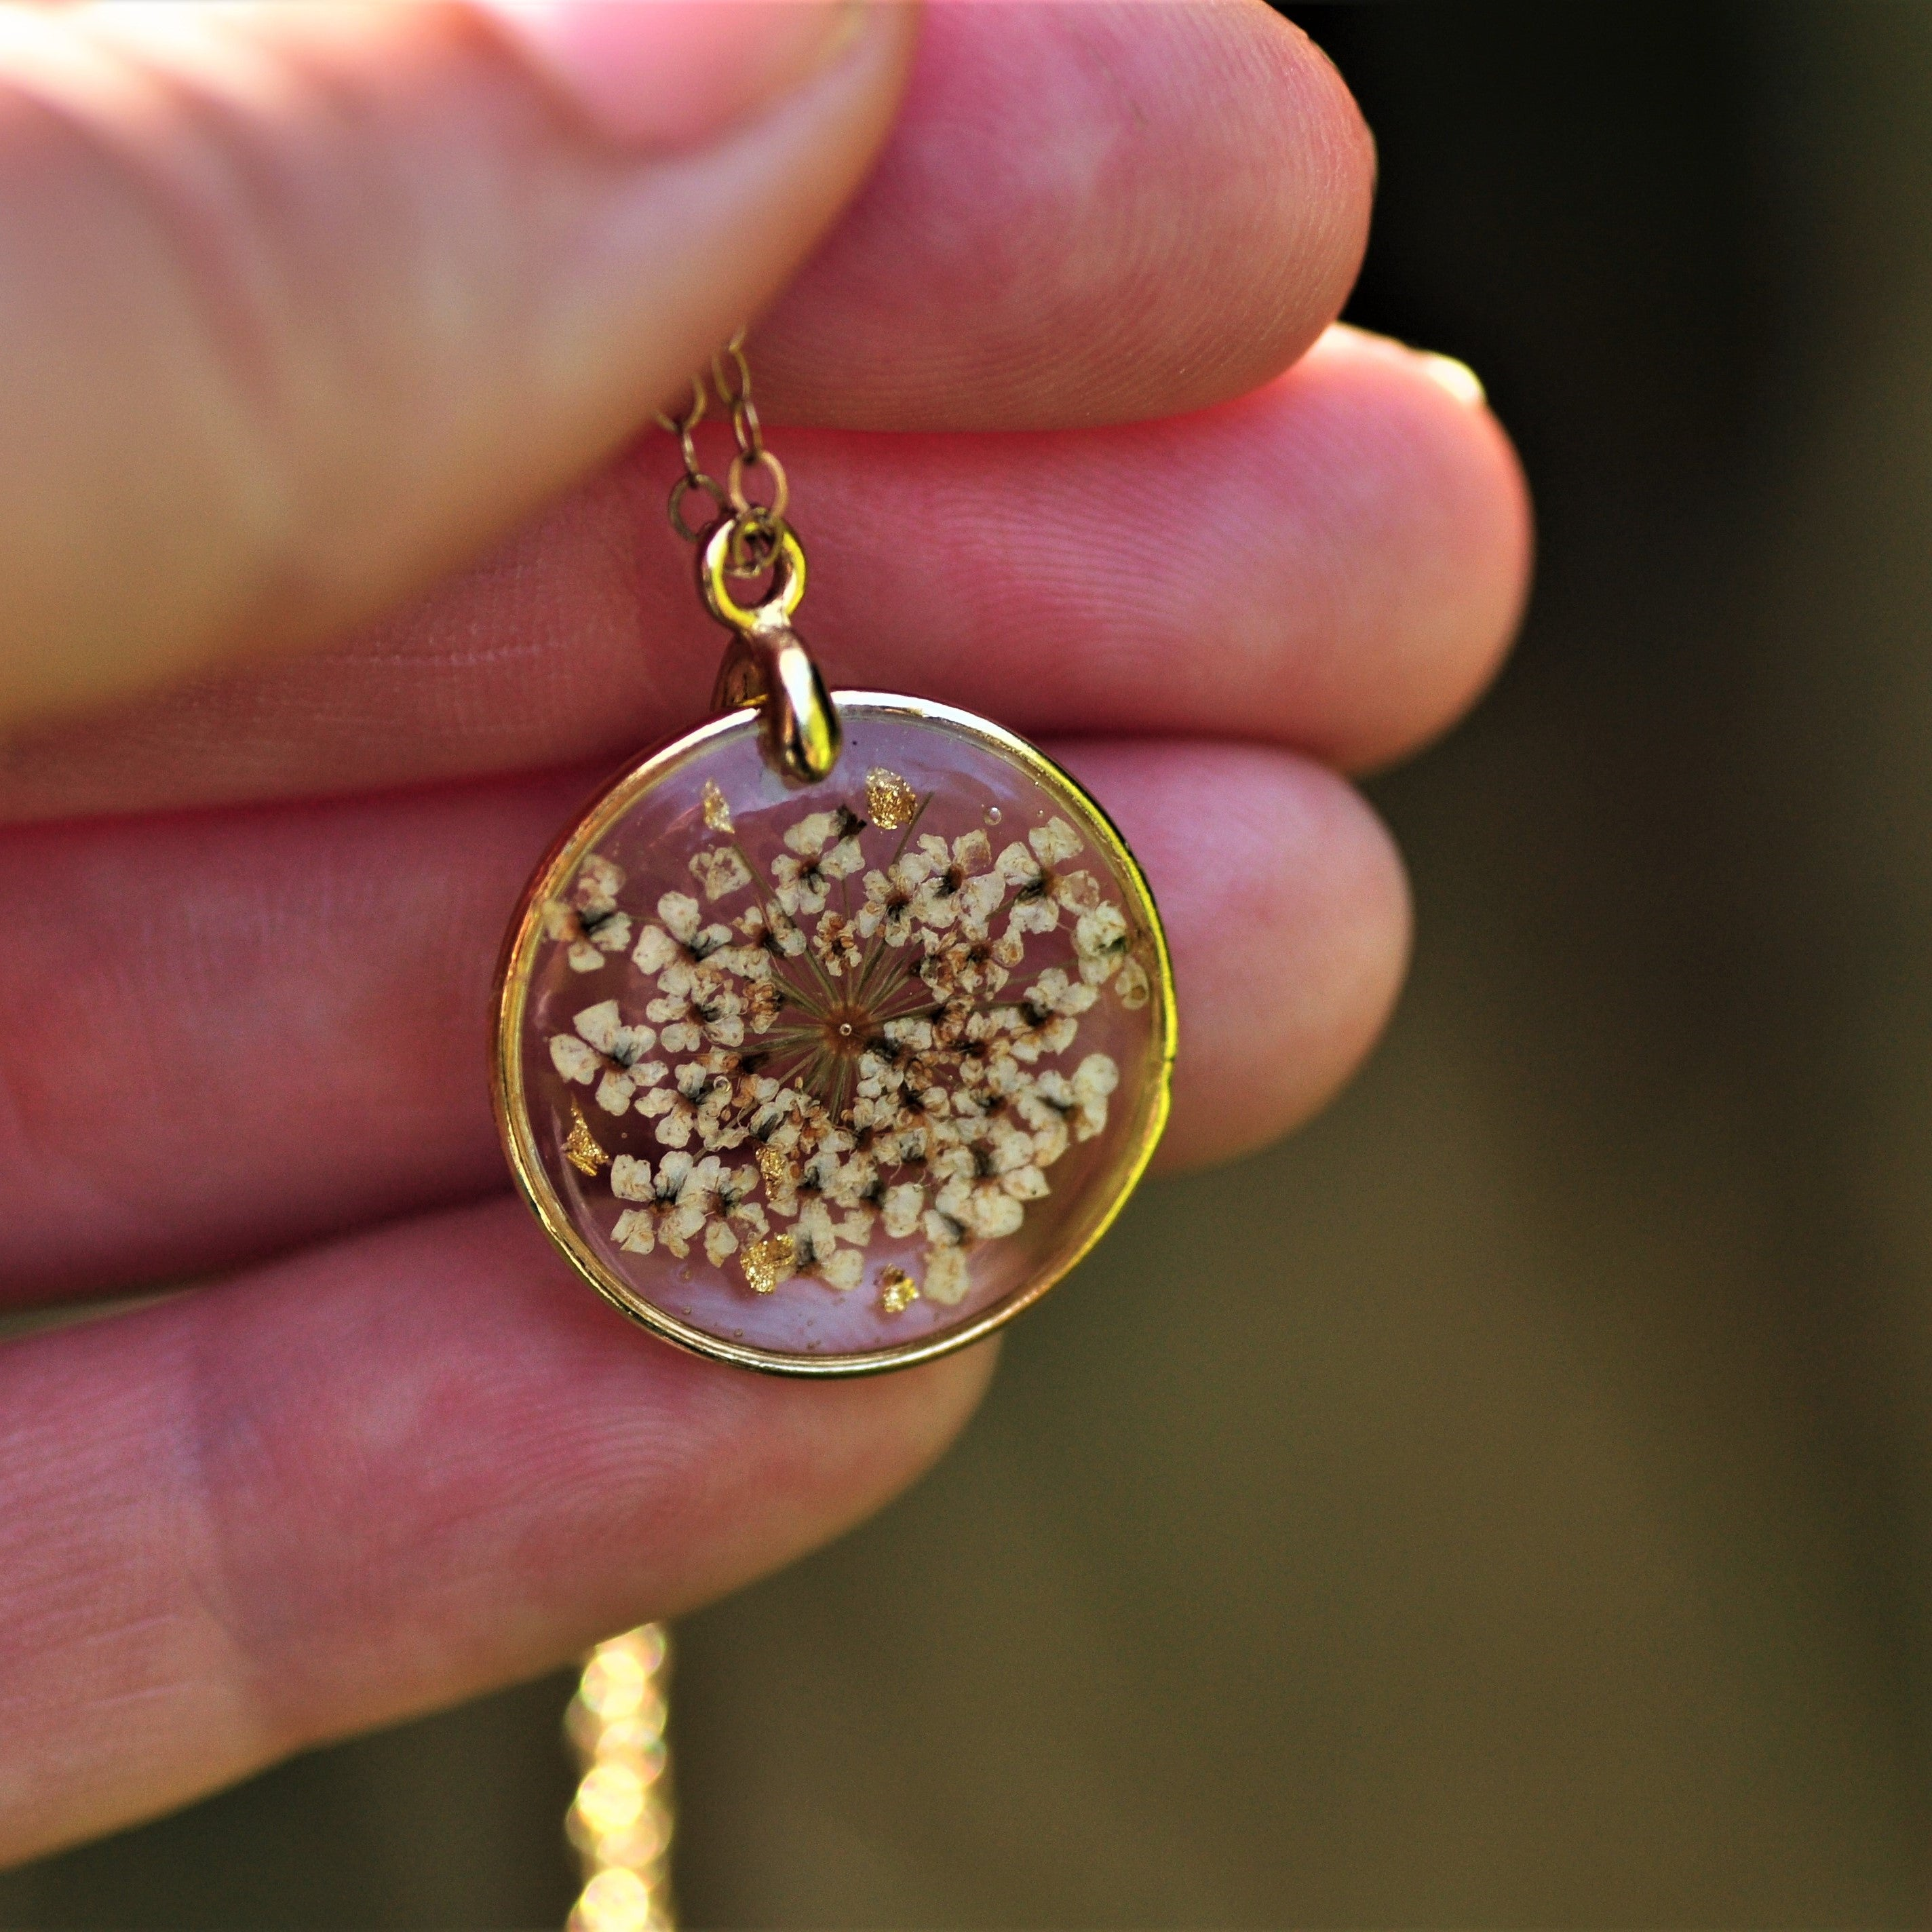 Queen Anne's lace puddle necklace - Gold fill